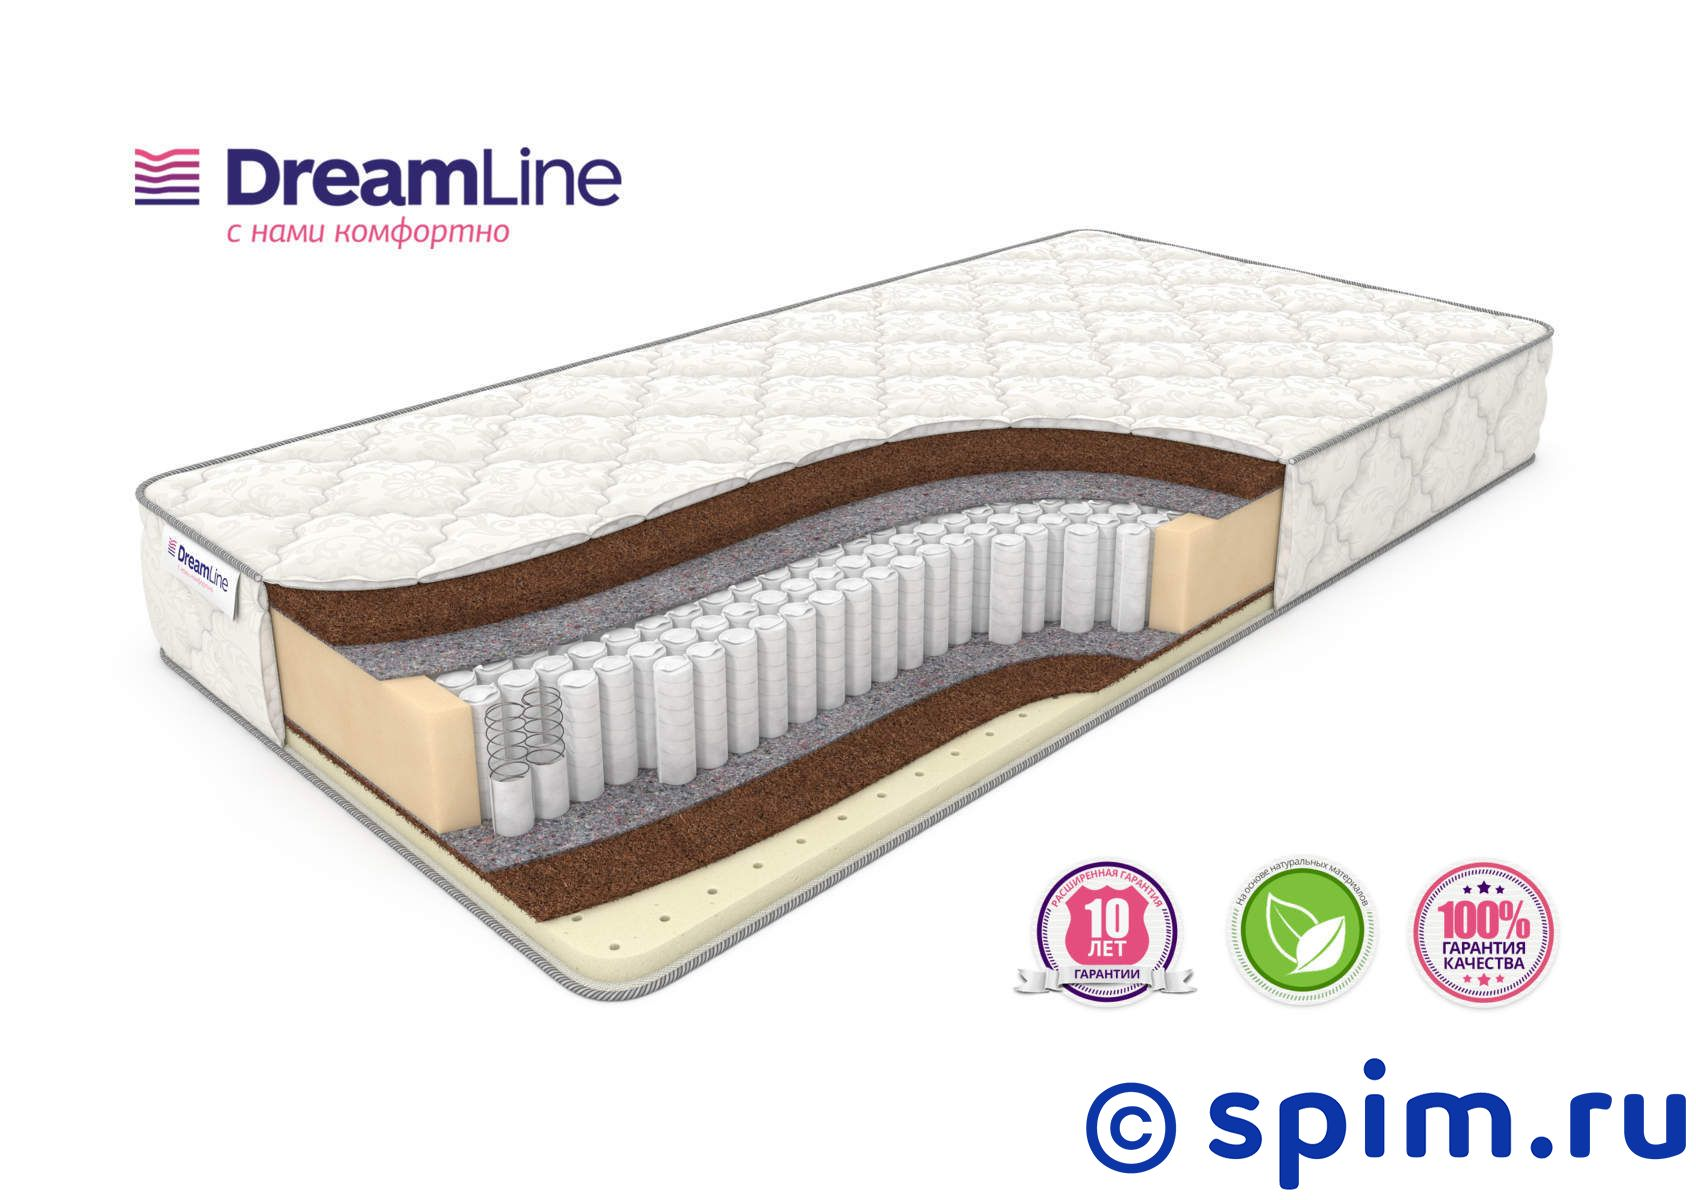 Матрас DreamLine SleepDream Hard S1000 120х195 см ключ santool 031638 019 022 19 22 мм